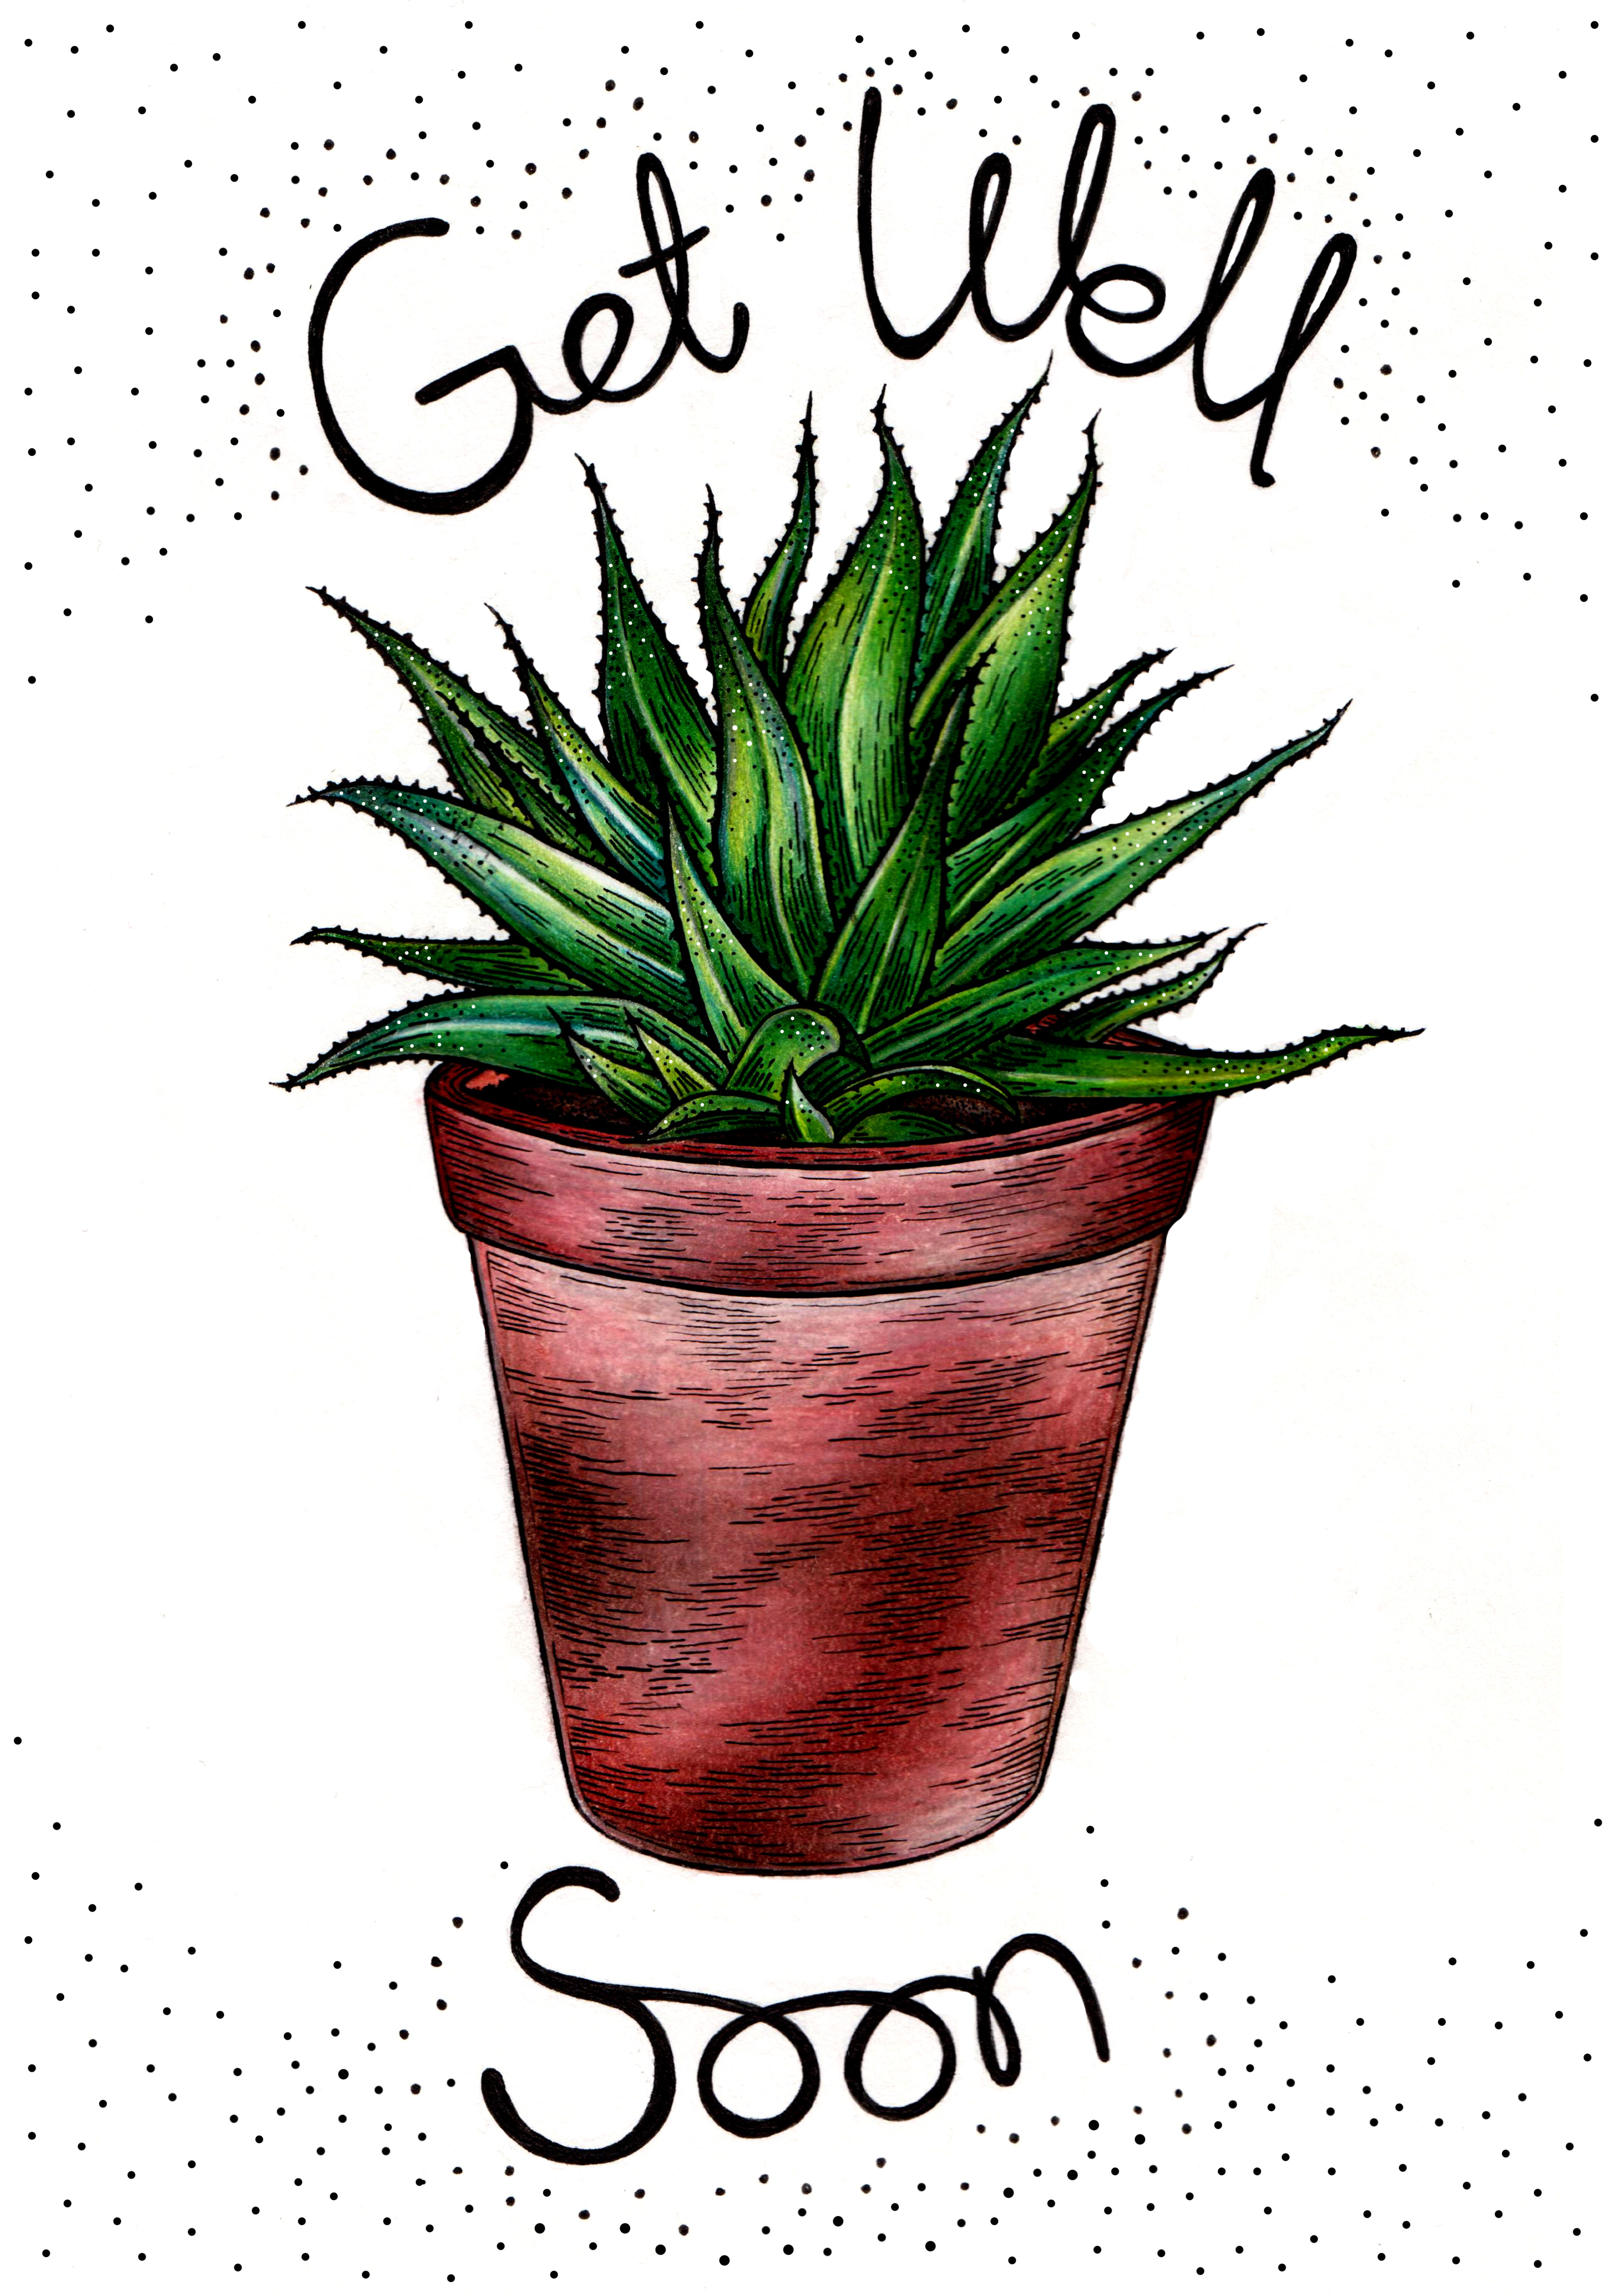 Get Well Soon Aloe Vera Greetings Card Design By Laura Dumbrell My